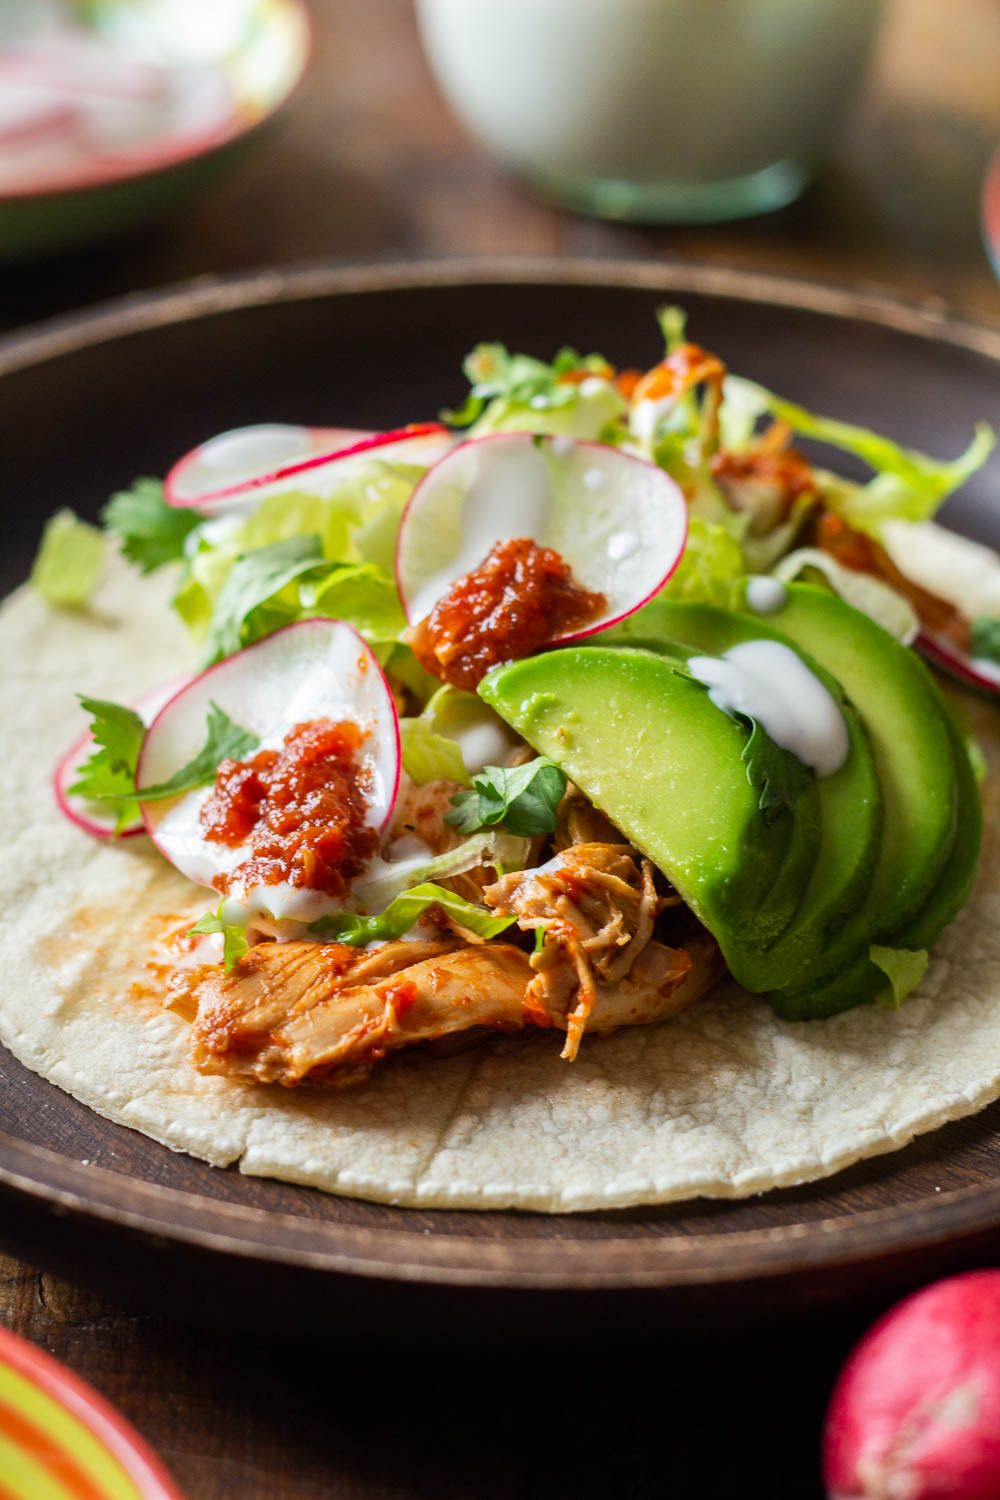 Crock pot chicken tacos are full of flavor and prepped in